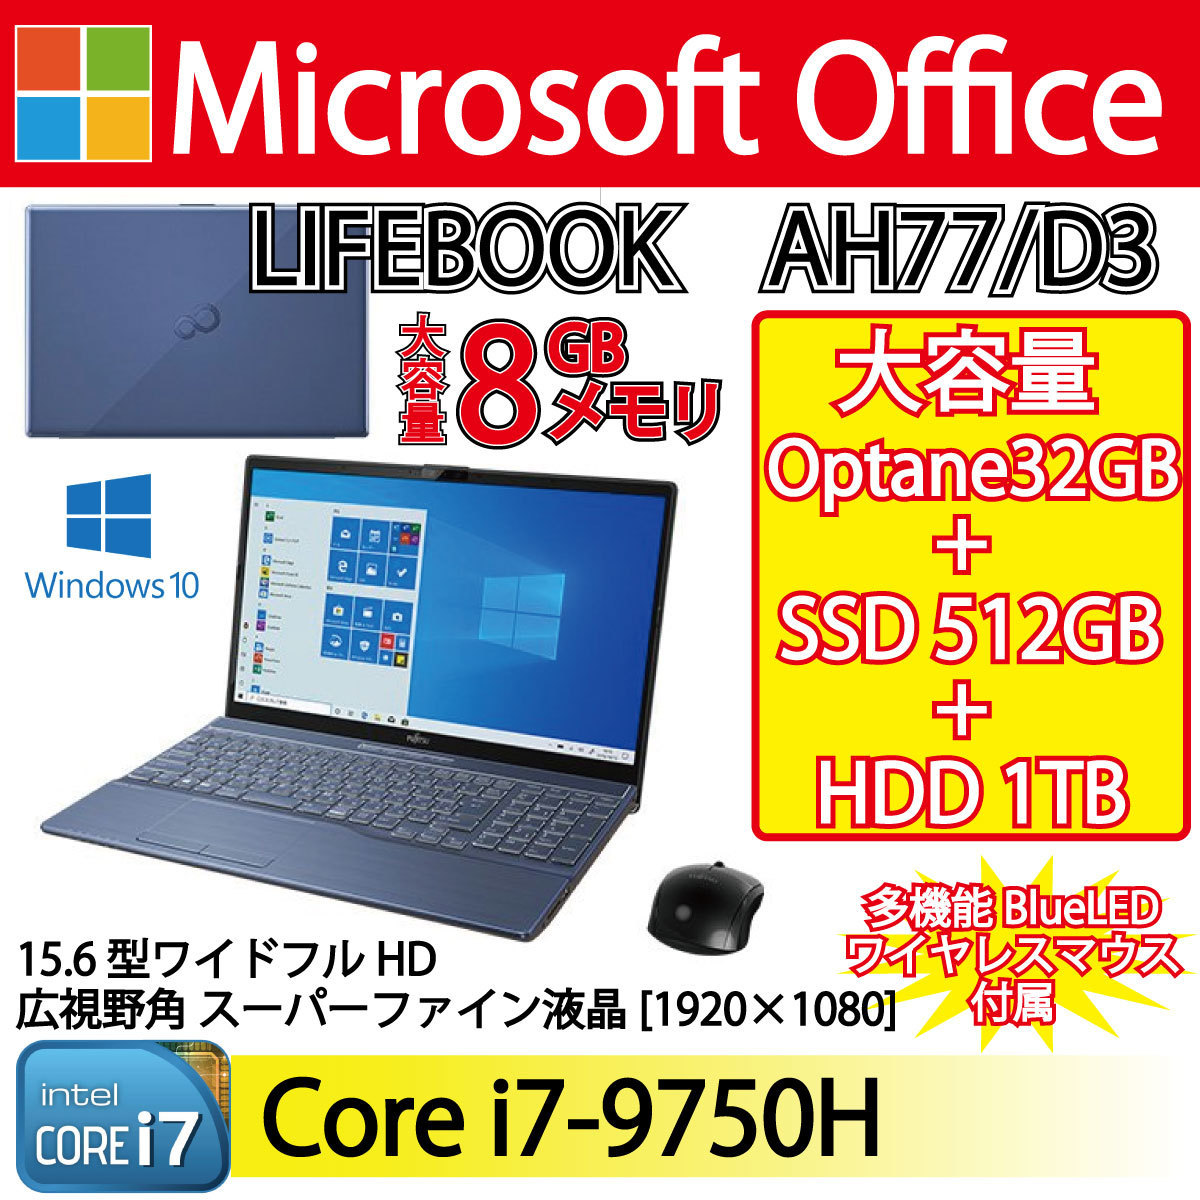 【再生品】LIFEBOOK AH77/D3 /Windows 10 /Core i7-9750H /32GB Optane + 512GB SSD + 1TB 8GB FHD Blu-ray Office メタリックブルー_画像1